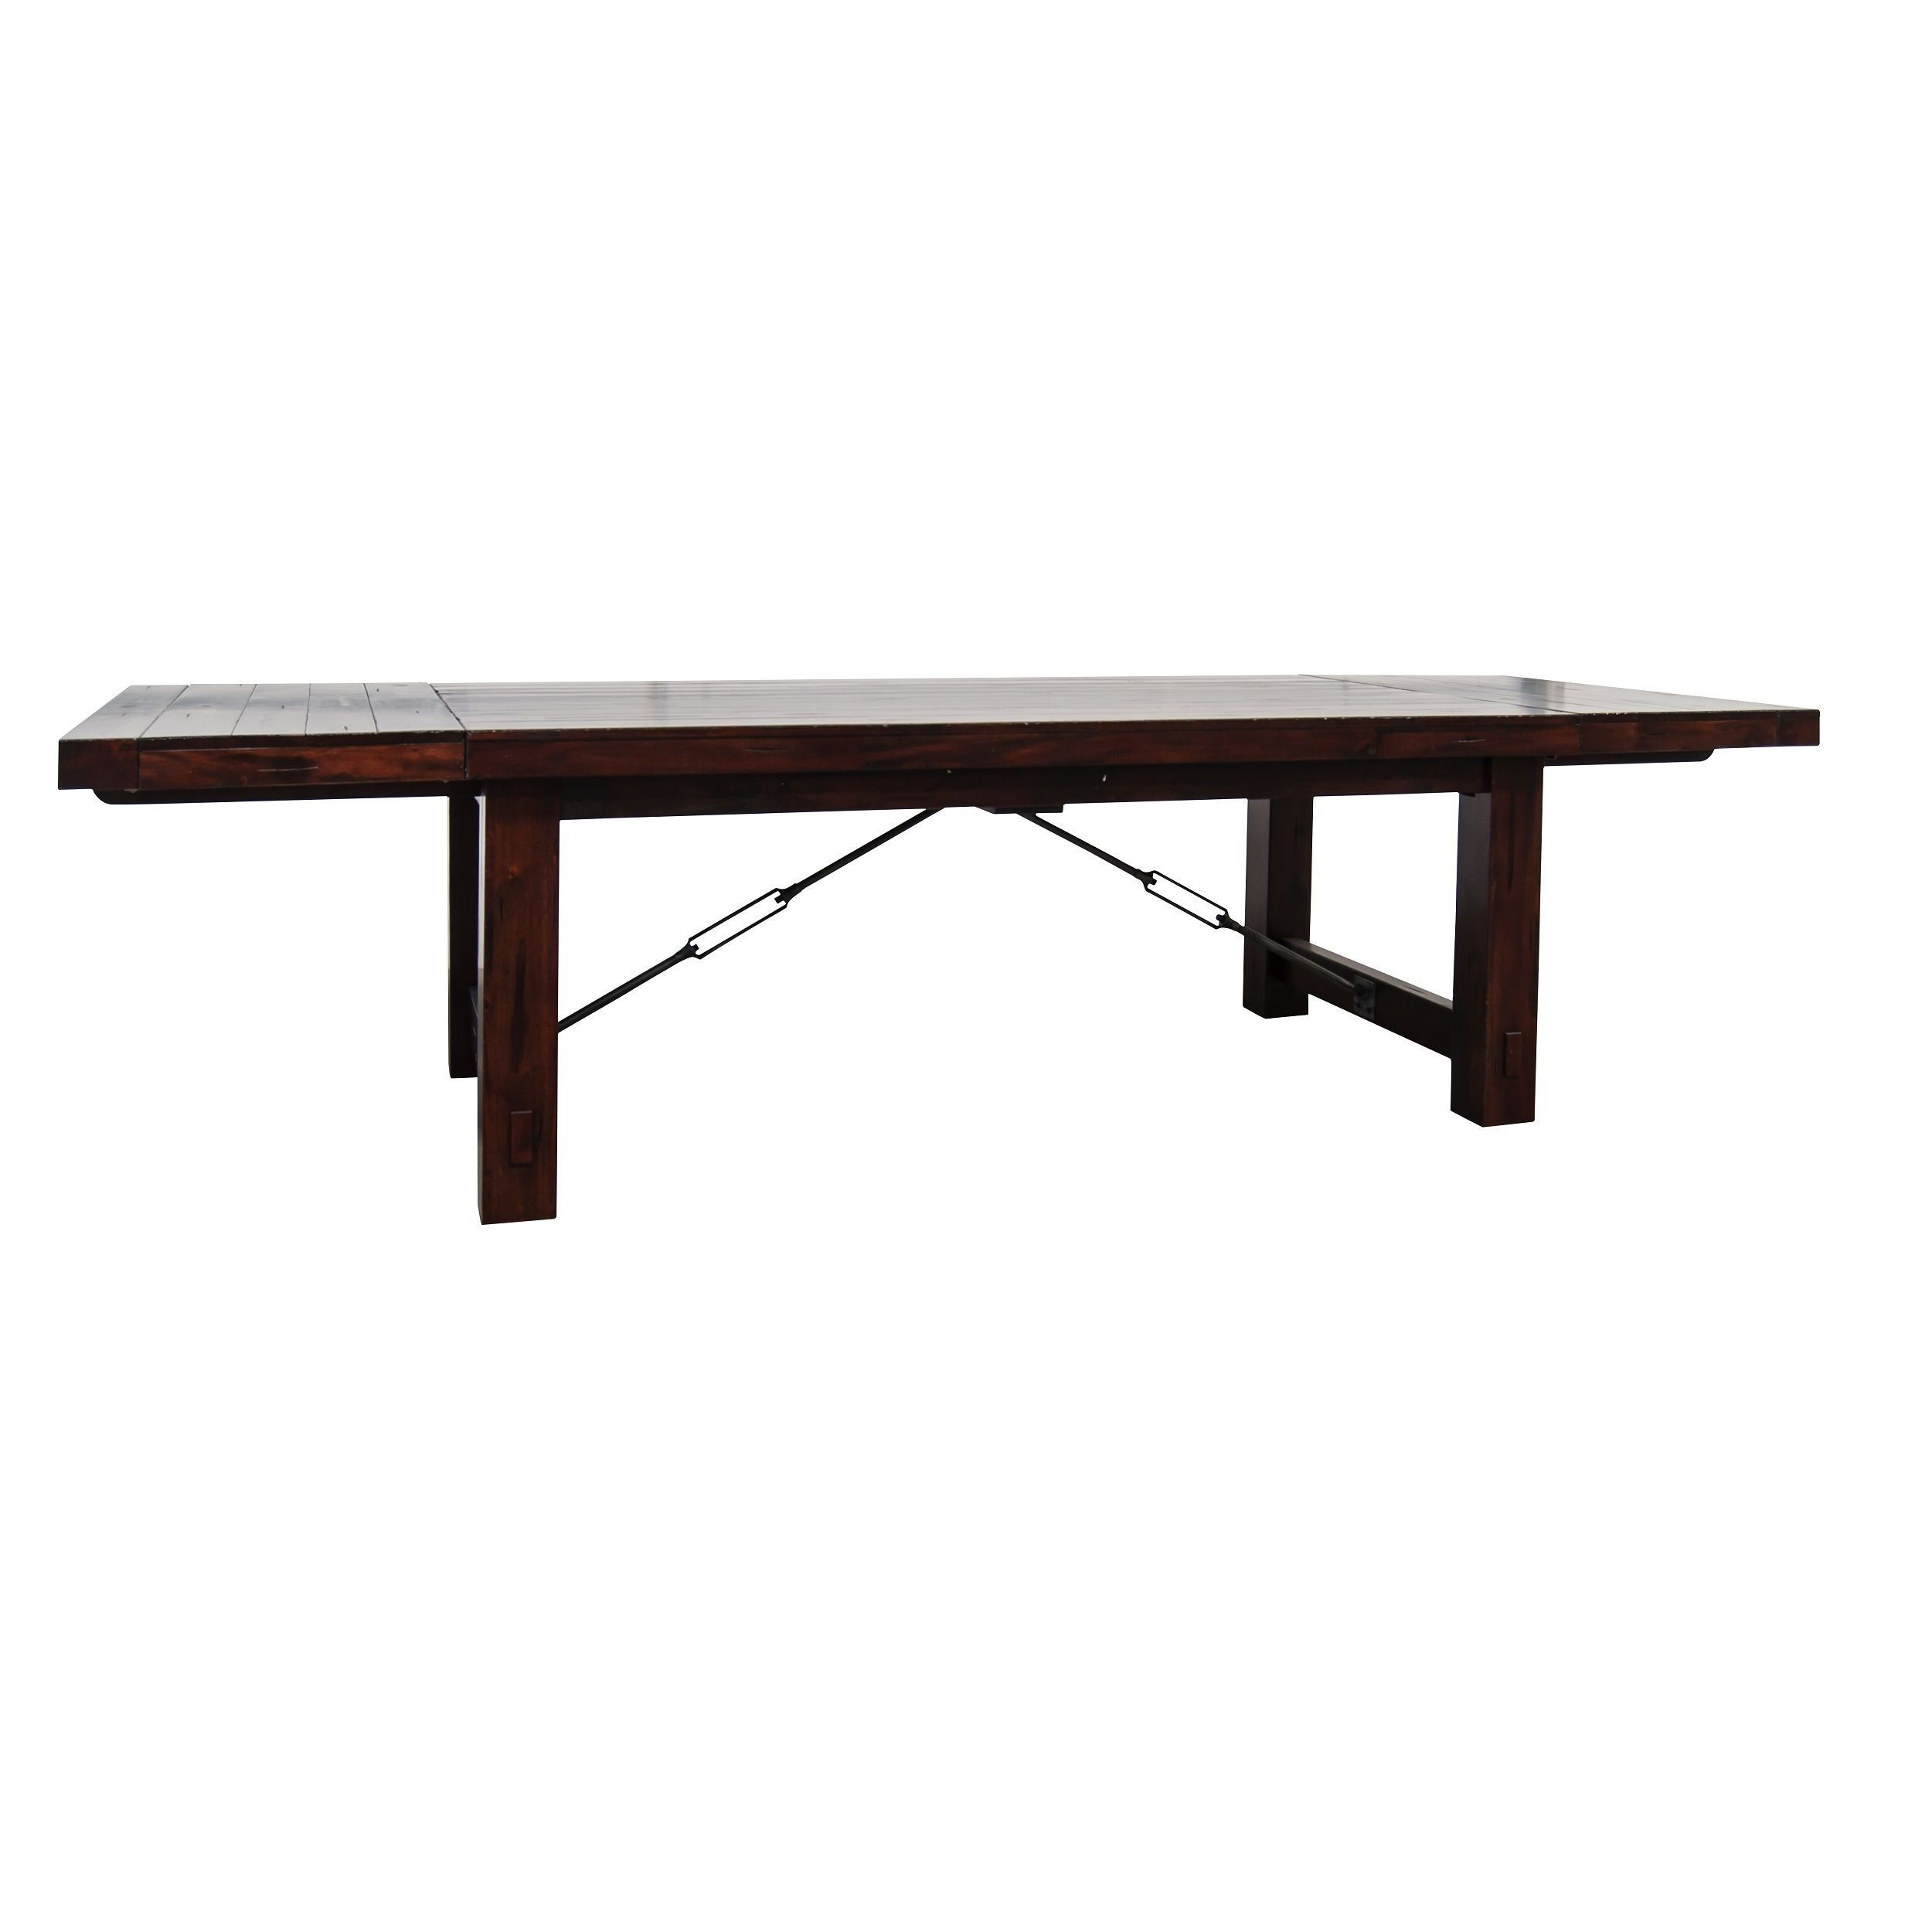 Sunny designs vineyard extension table rustic mahogany brown sunny designs vineyard extension table rustic mahogany brown geotapseo Image collections